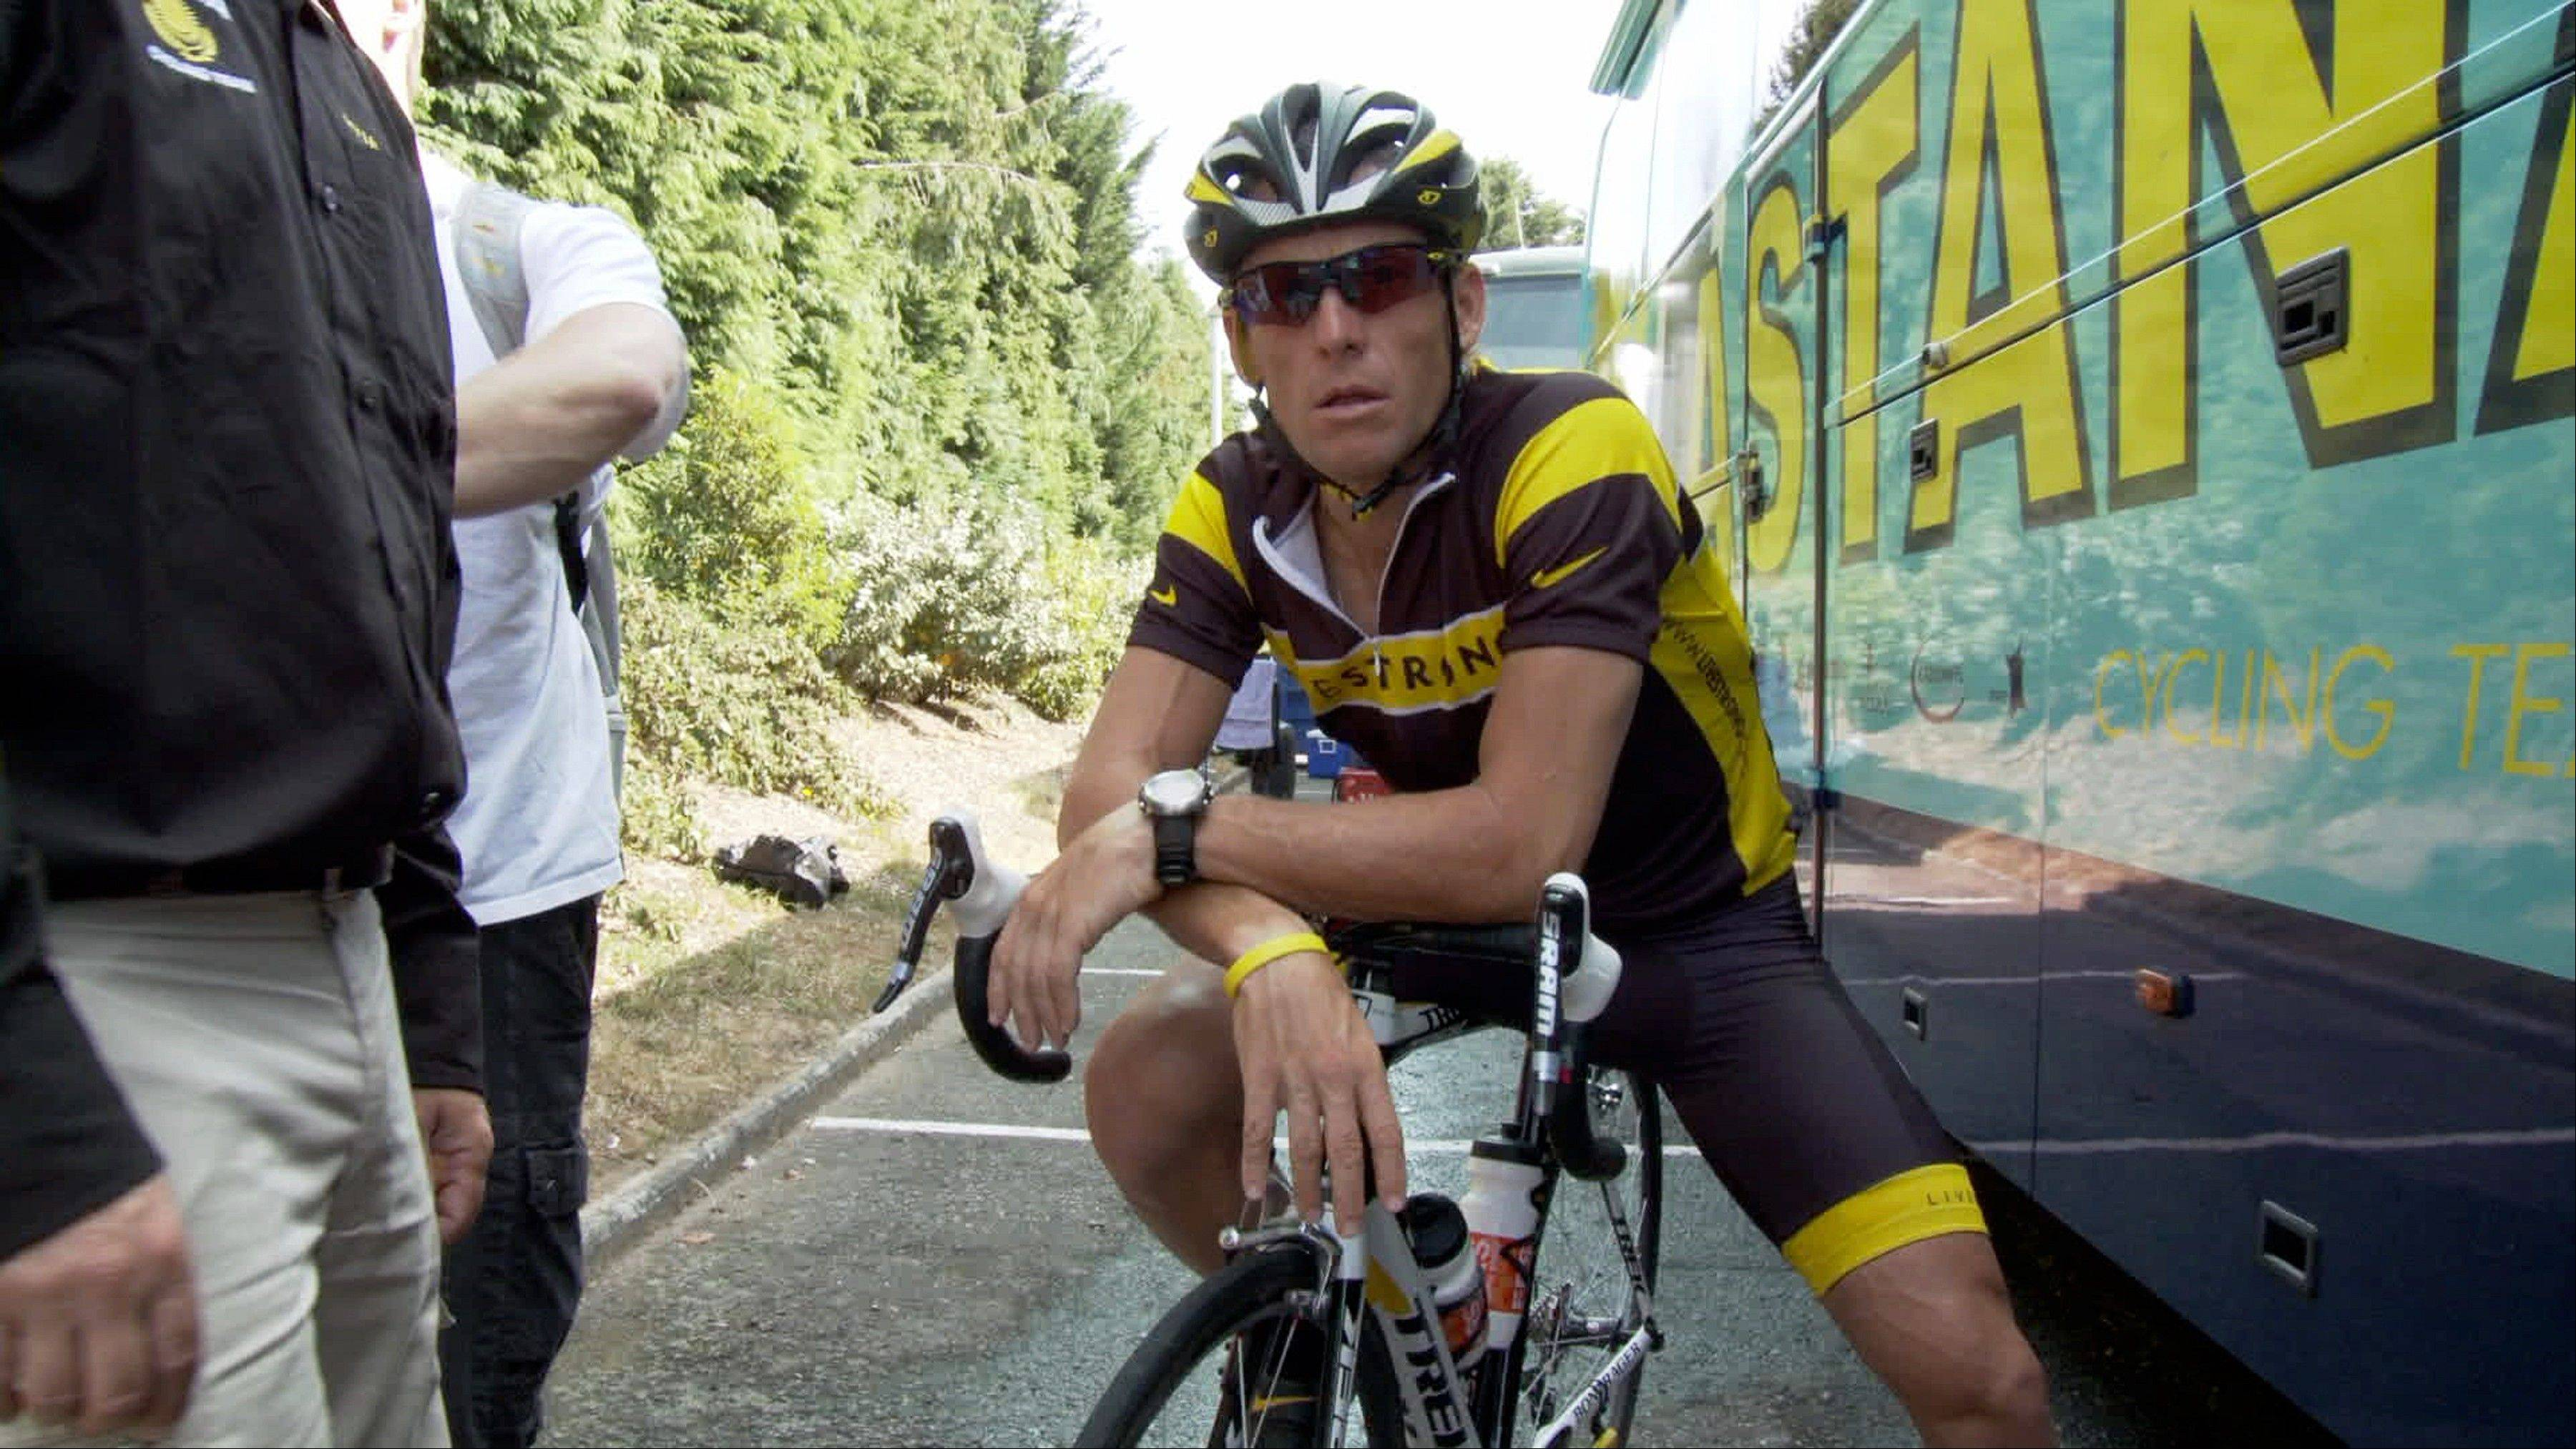 """The Armstrong Lie"" tracks Lance Armstrong's cycling career before and after his fall from grace."